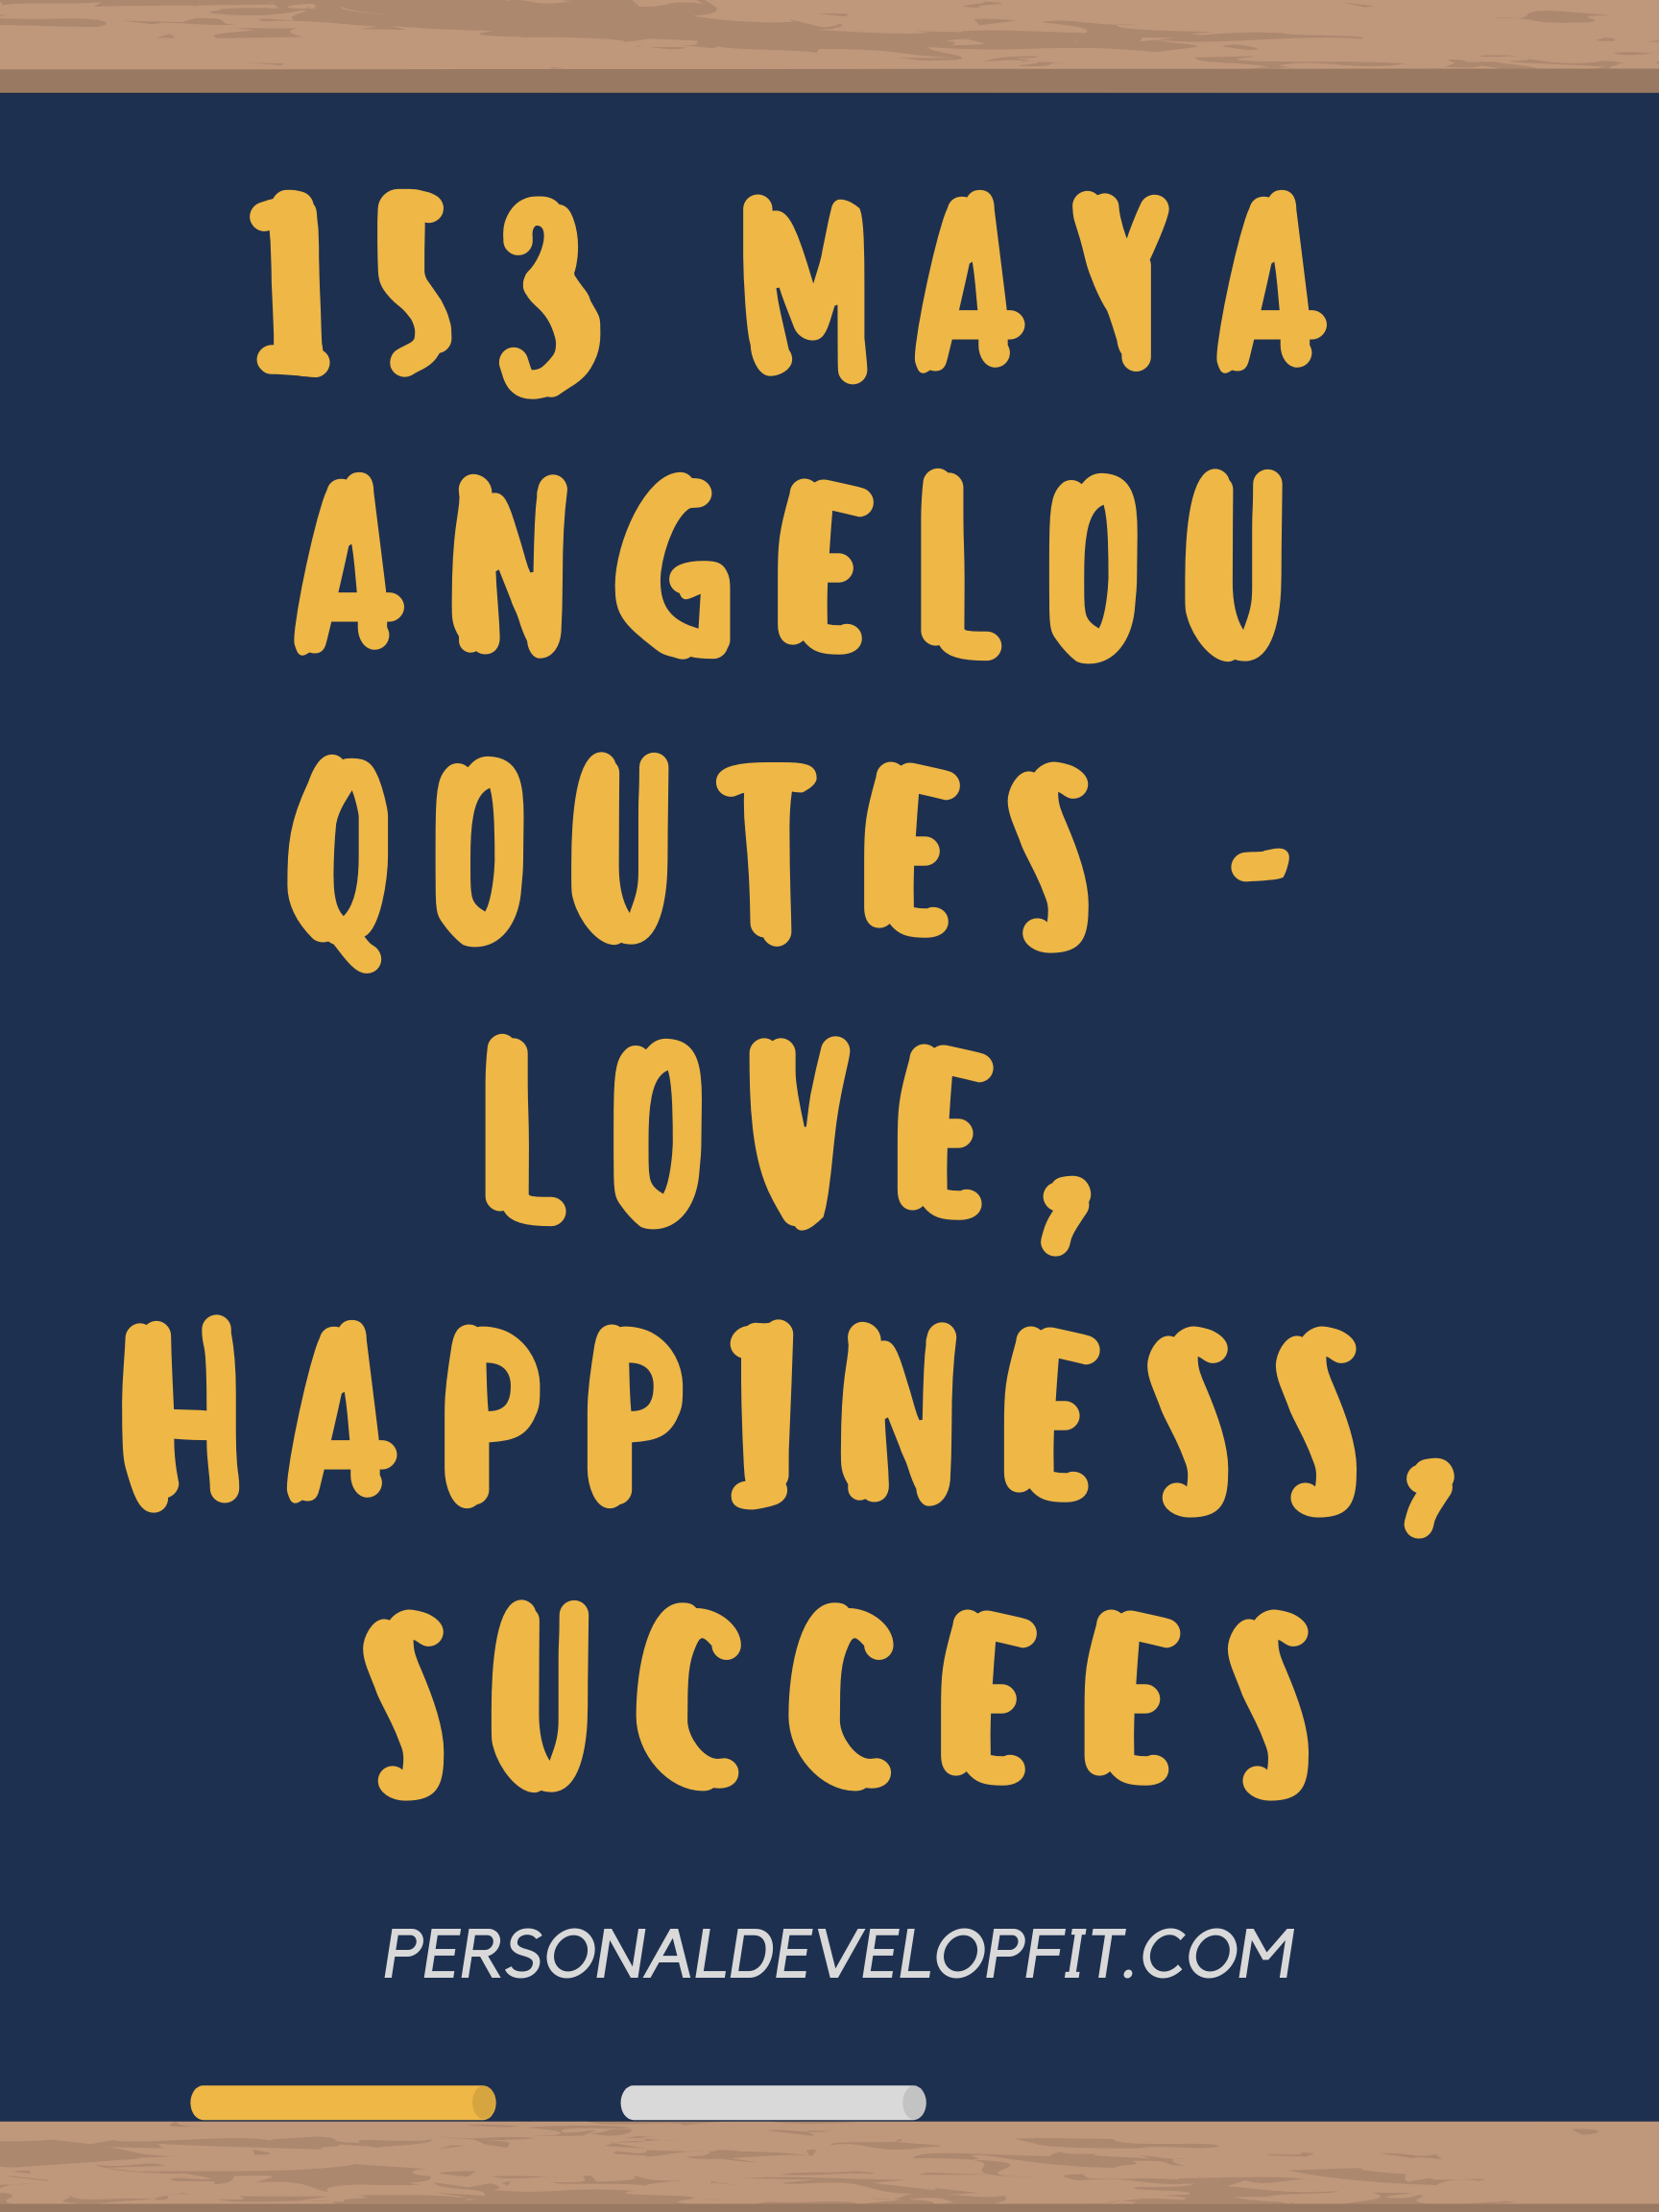 Image of: Pinterest 153 Maya Angelou Quotes On Love Happiness Family Success Personaldevelopfitcom 153 Maya Angelou Quotes On Love Happiness Family Success